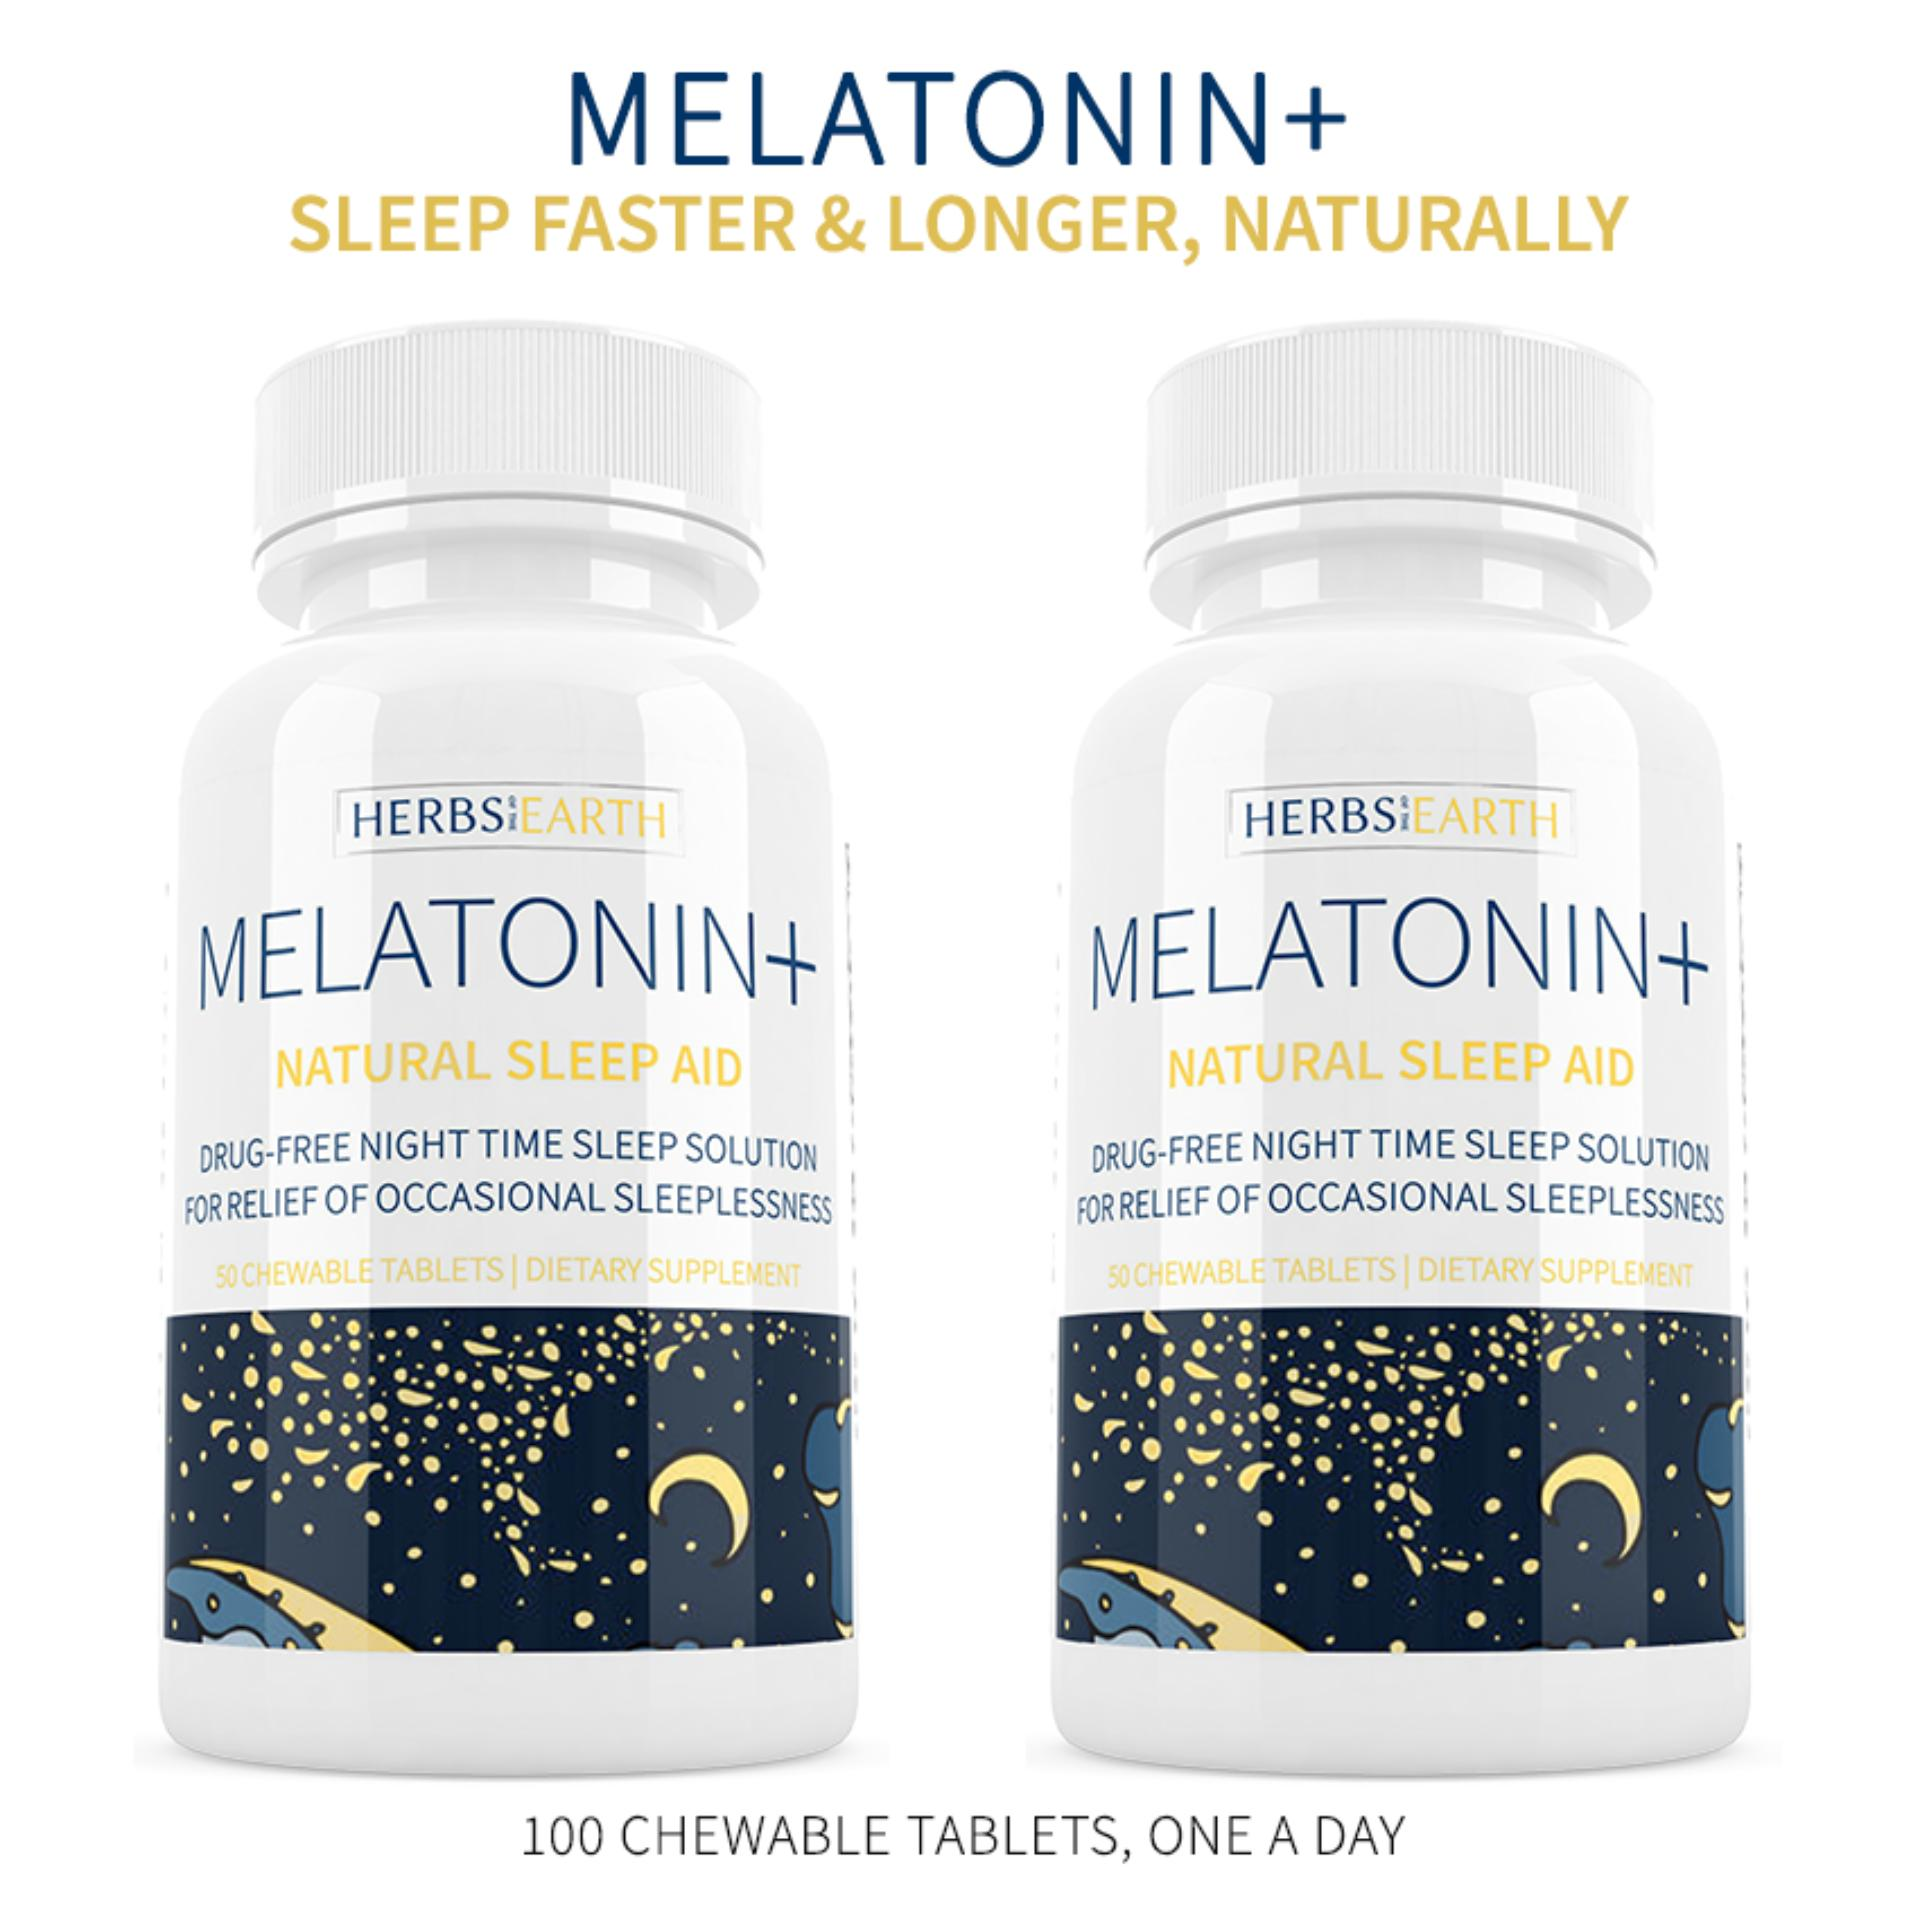 Melatonin + Sleep Faster & Longer 2 Bottles, 3MG Fast Acting Chewable  Tablets, For Insomniacs or Stress Induced Sleeplessness, 100 Chewable  Tablets